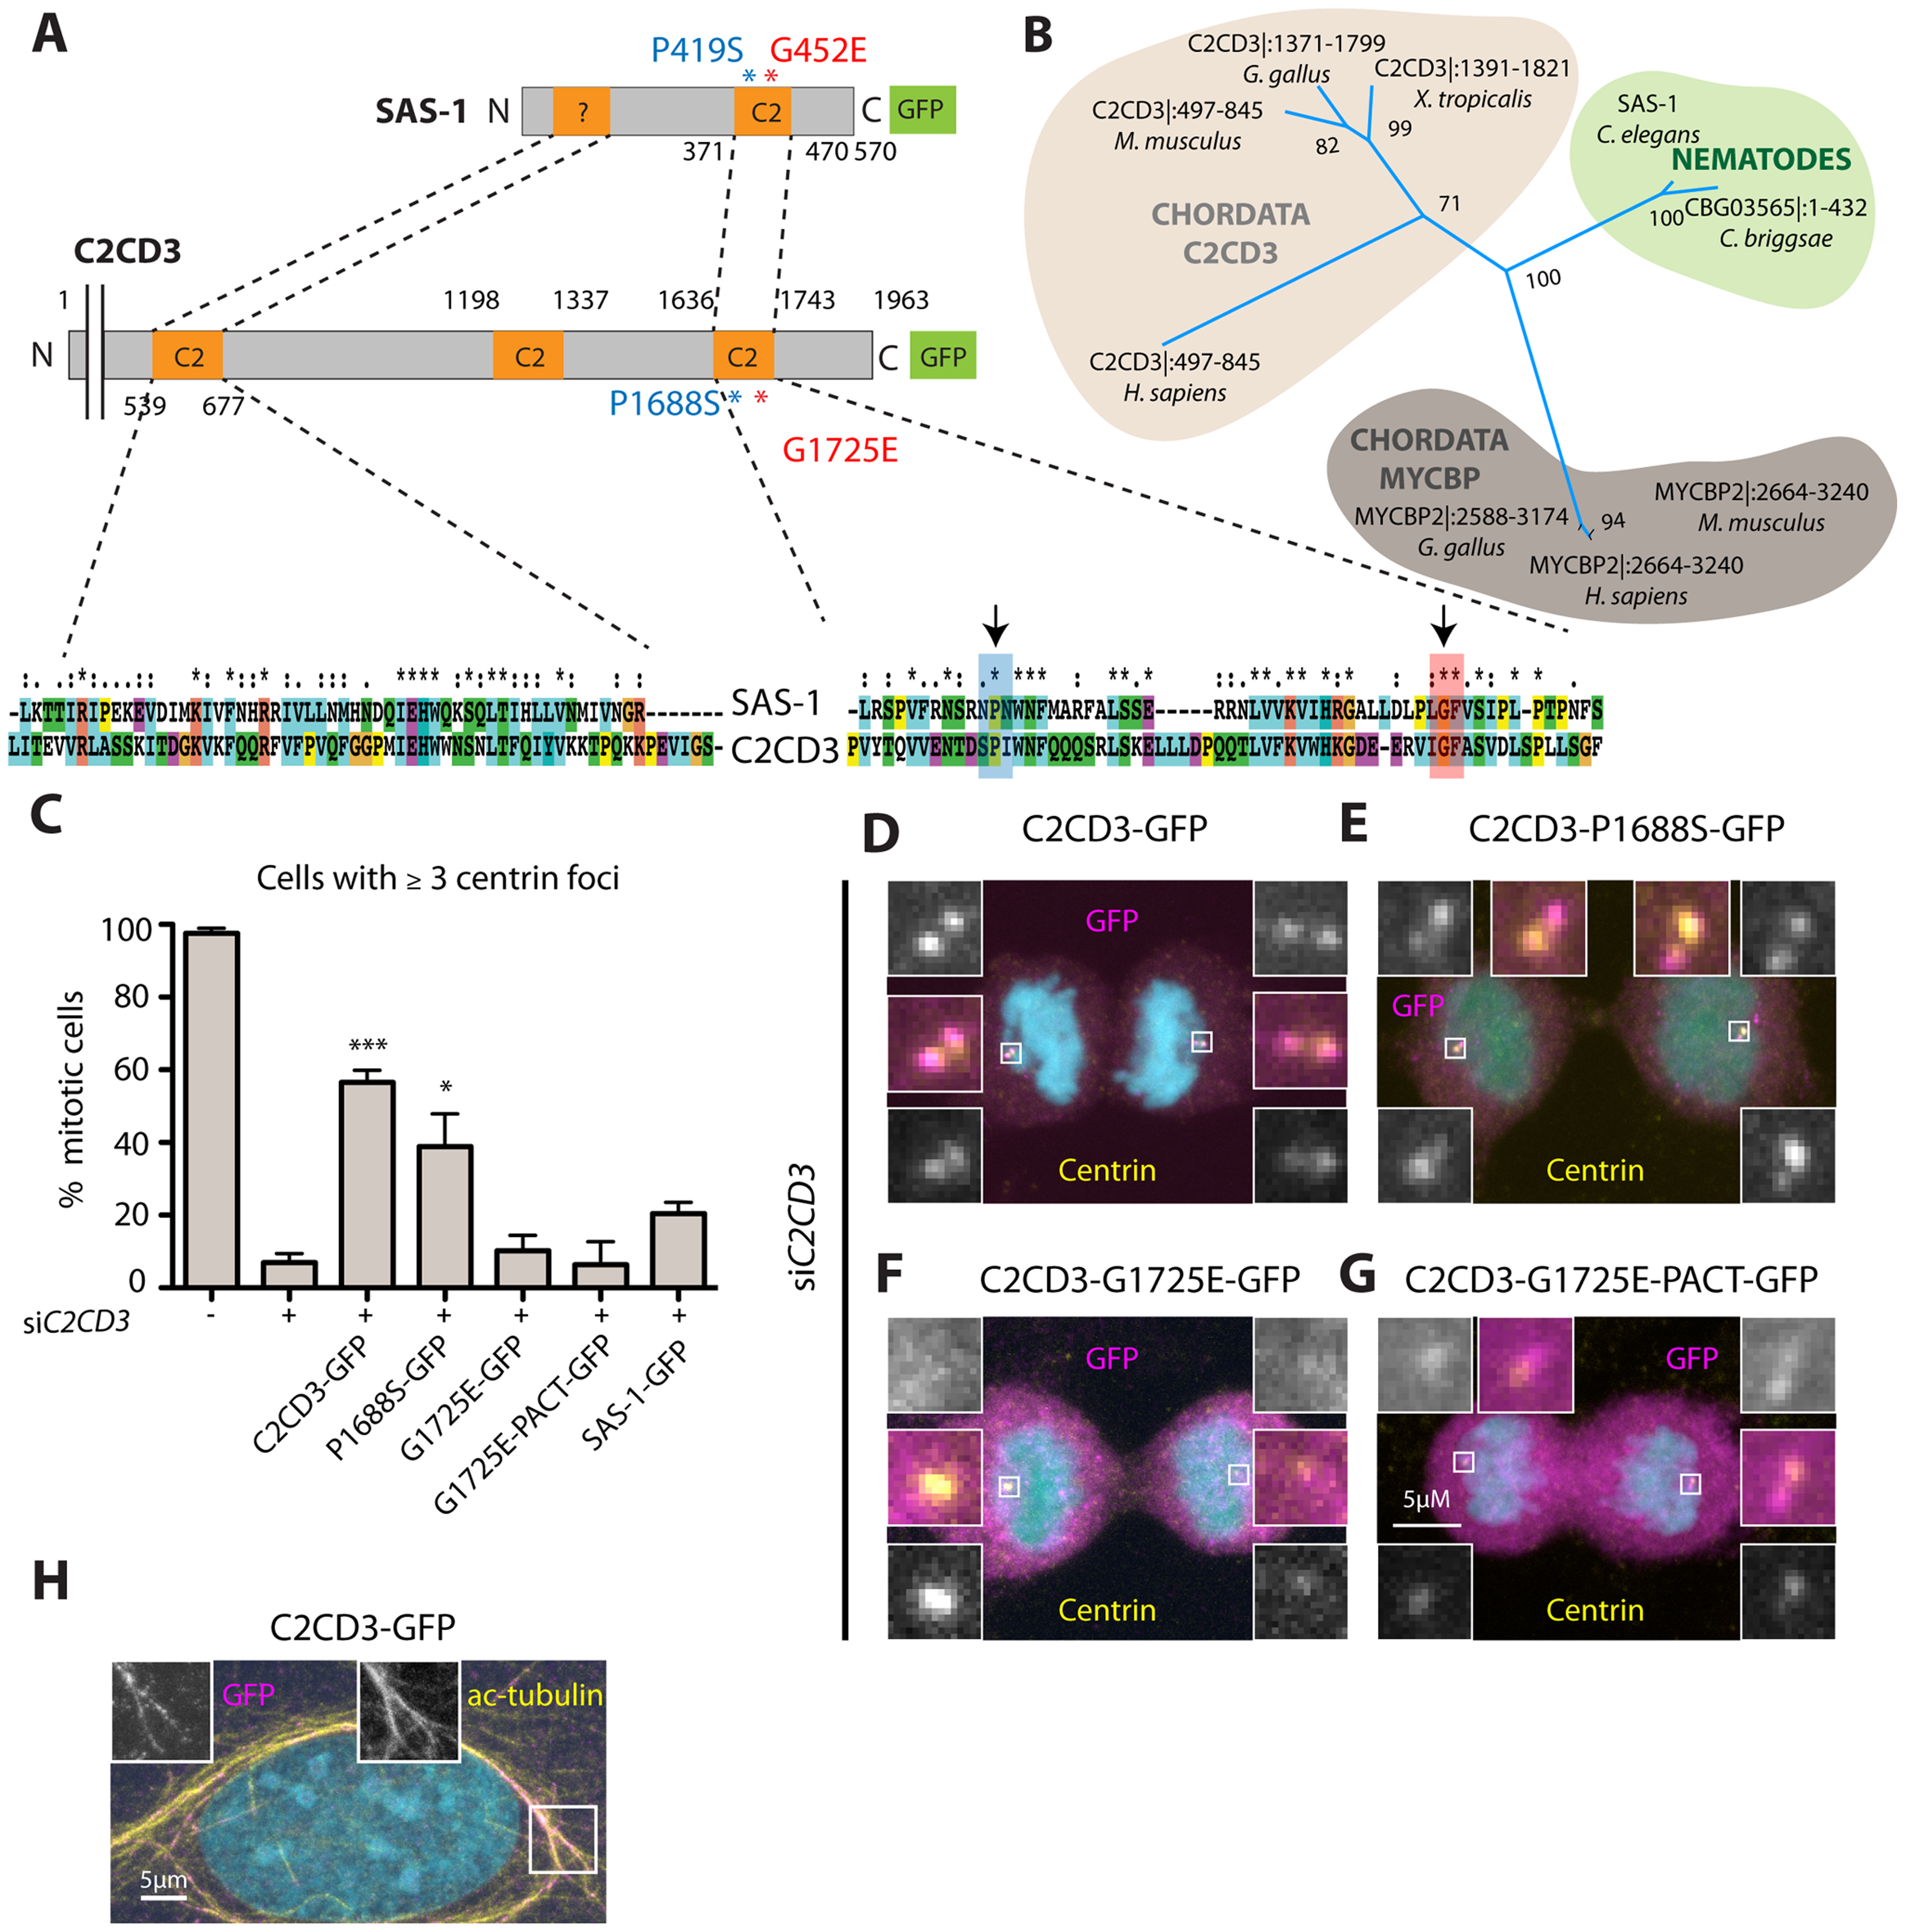 The human SAS-1 homolog C2CD3 is impaired by mutations important for SAS-1 function.